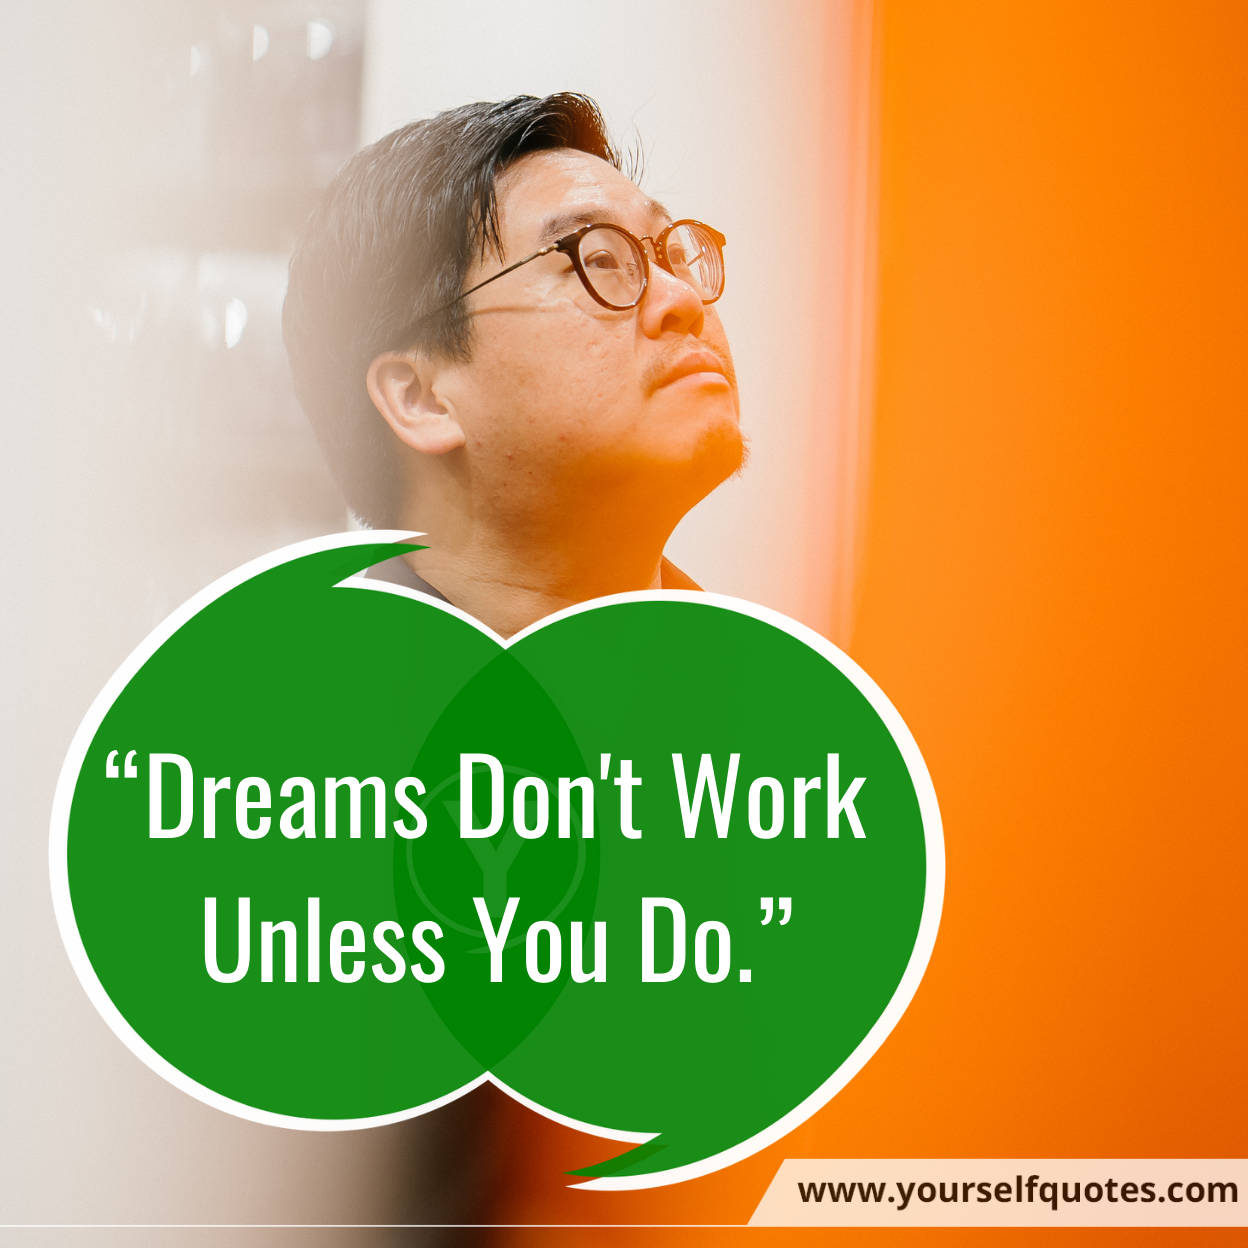 Best Quotes on Dream